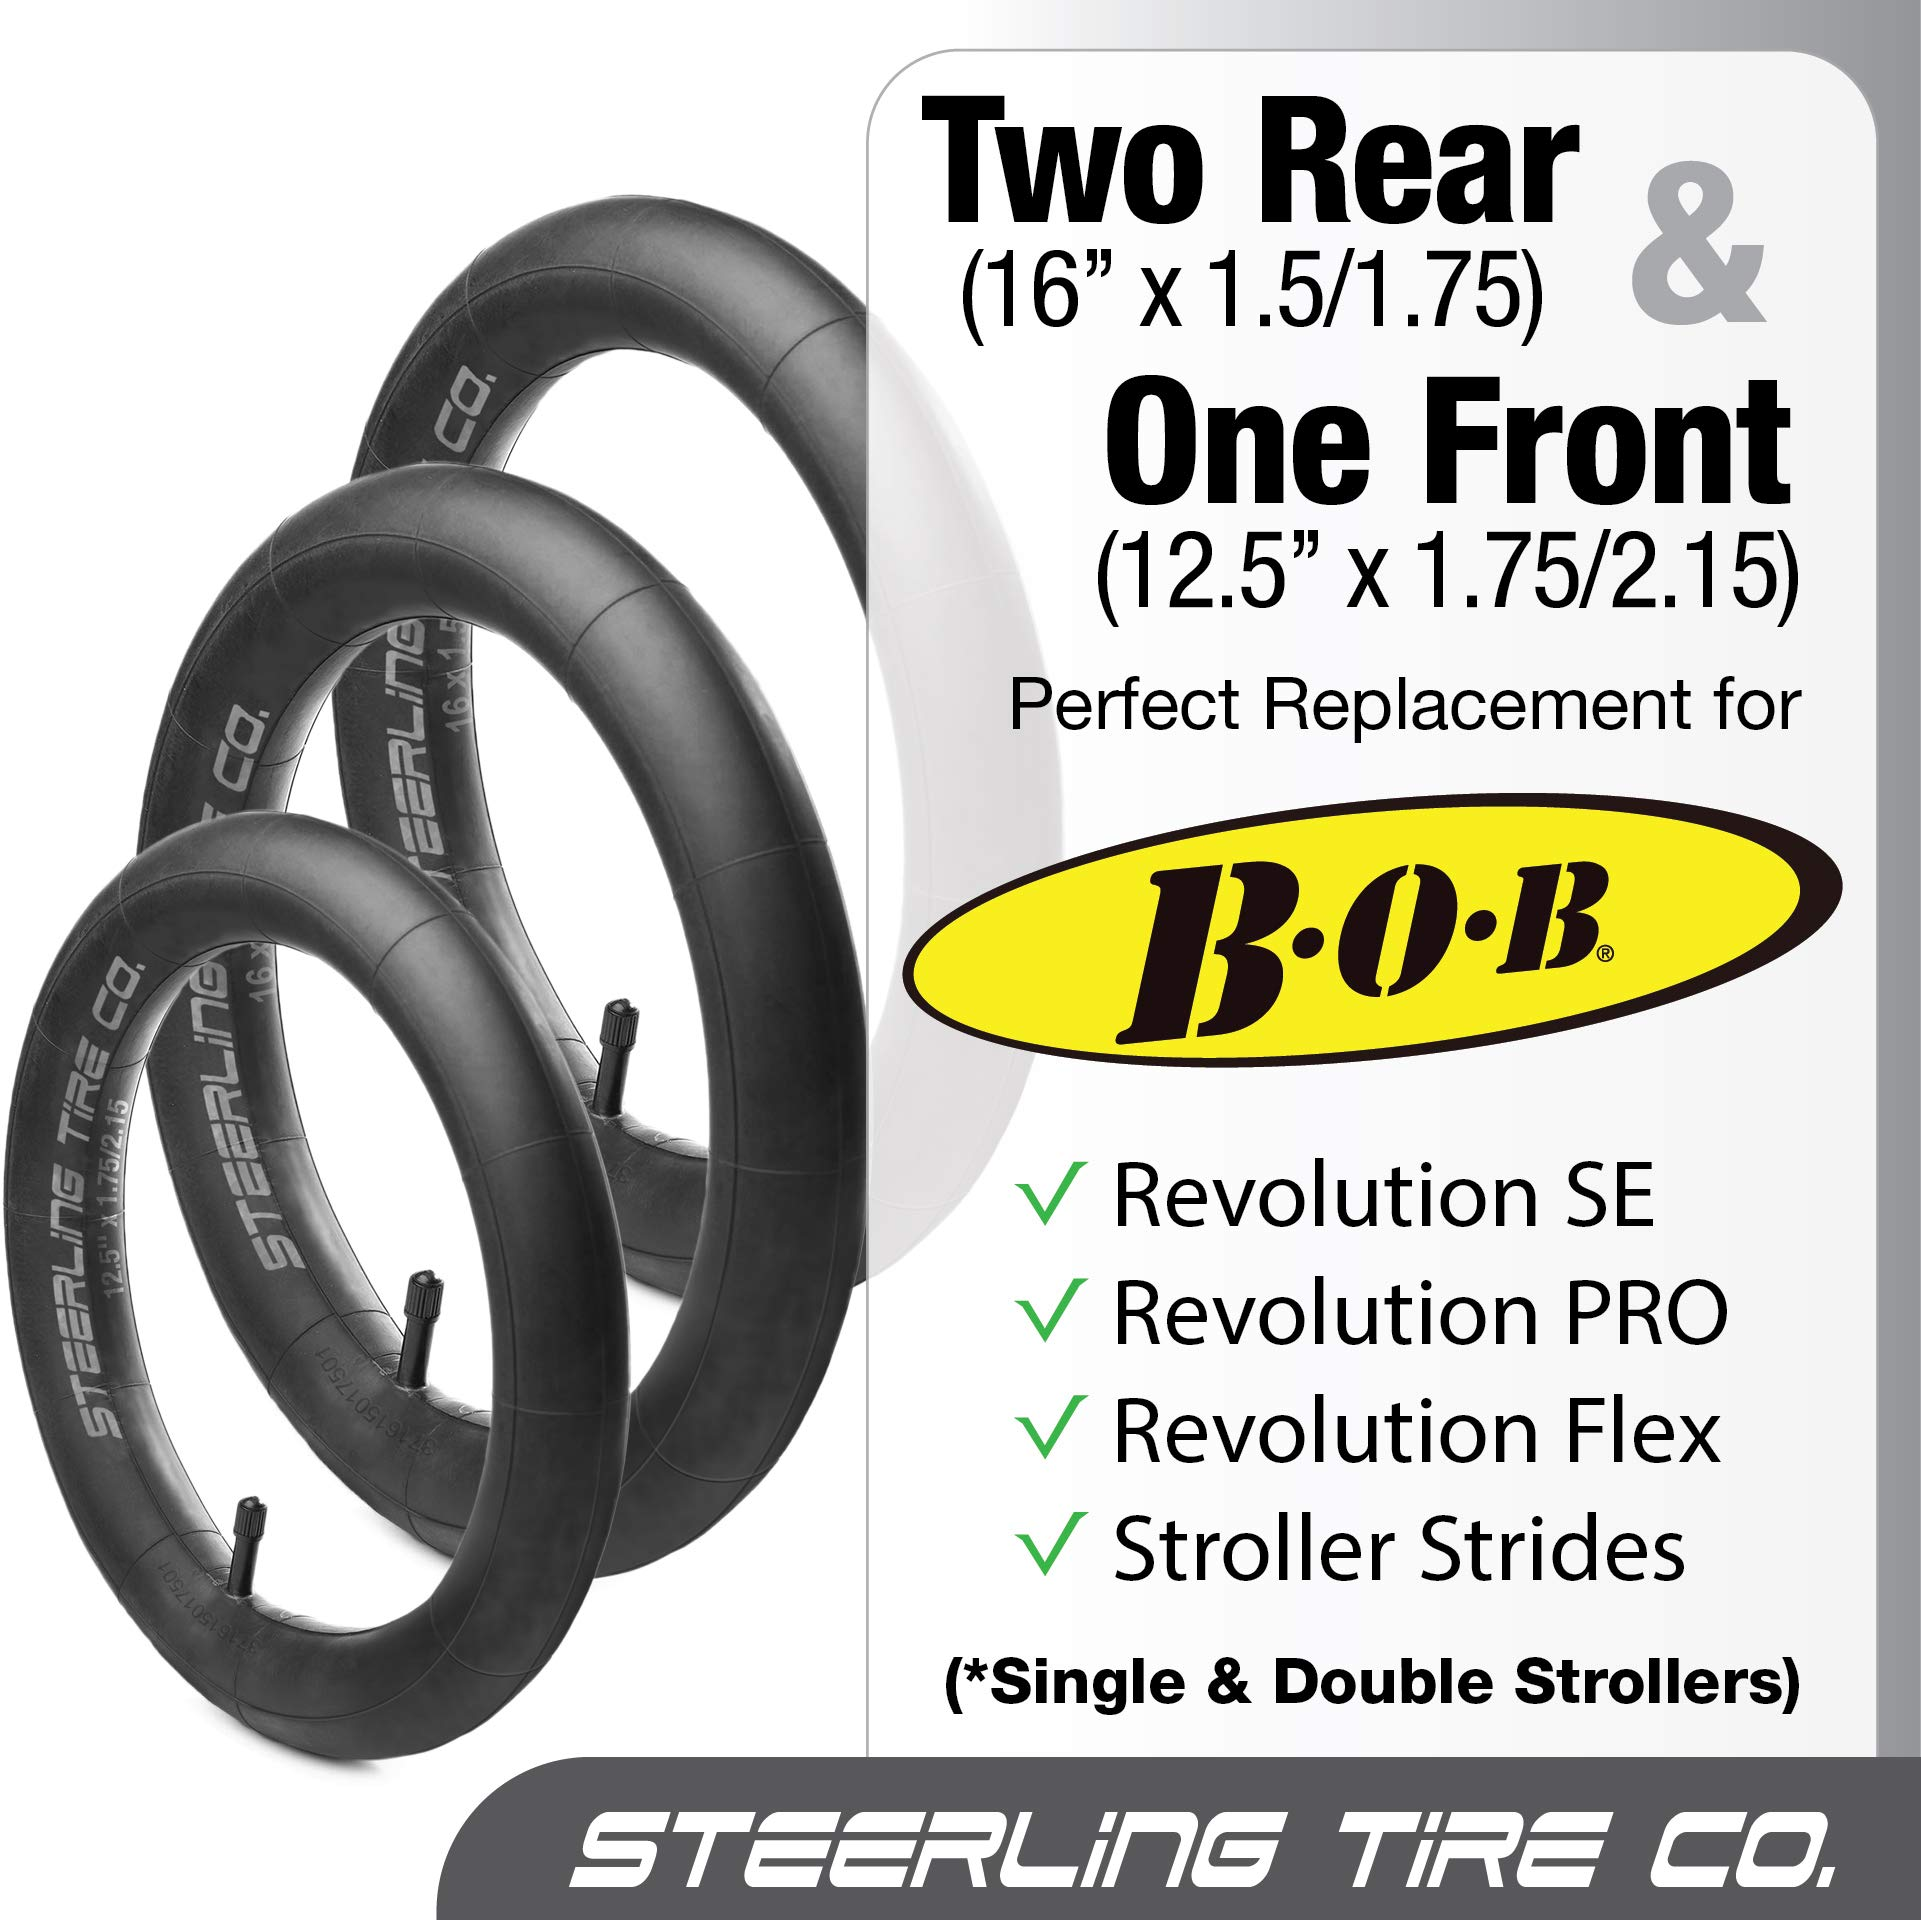 [3-Pack] Two 16'' x 1.5/1.75 Rear AND One 12.5'' x 1.75/2.15 Front Heavy Duty Thorn Resistant Inner Tire Tube For All BOB Revolution Strollers & Stroller Strides - The Smart BOB Stroller Tire Tube Set by Steerling Tire Co. (Image #4)